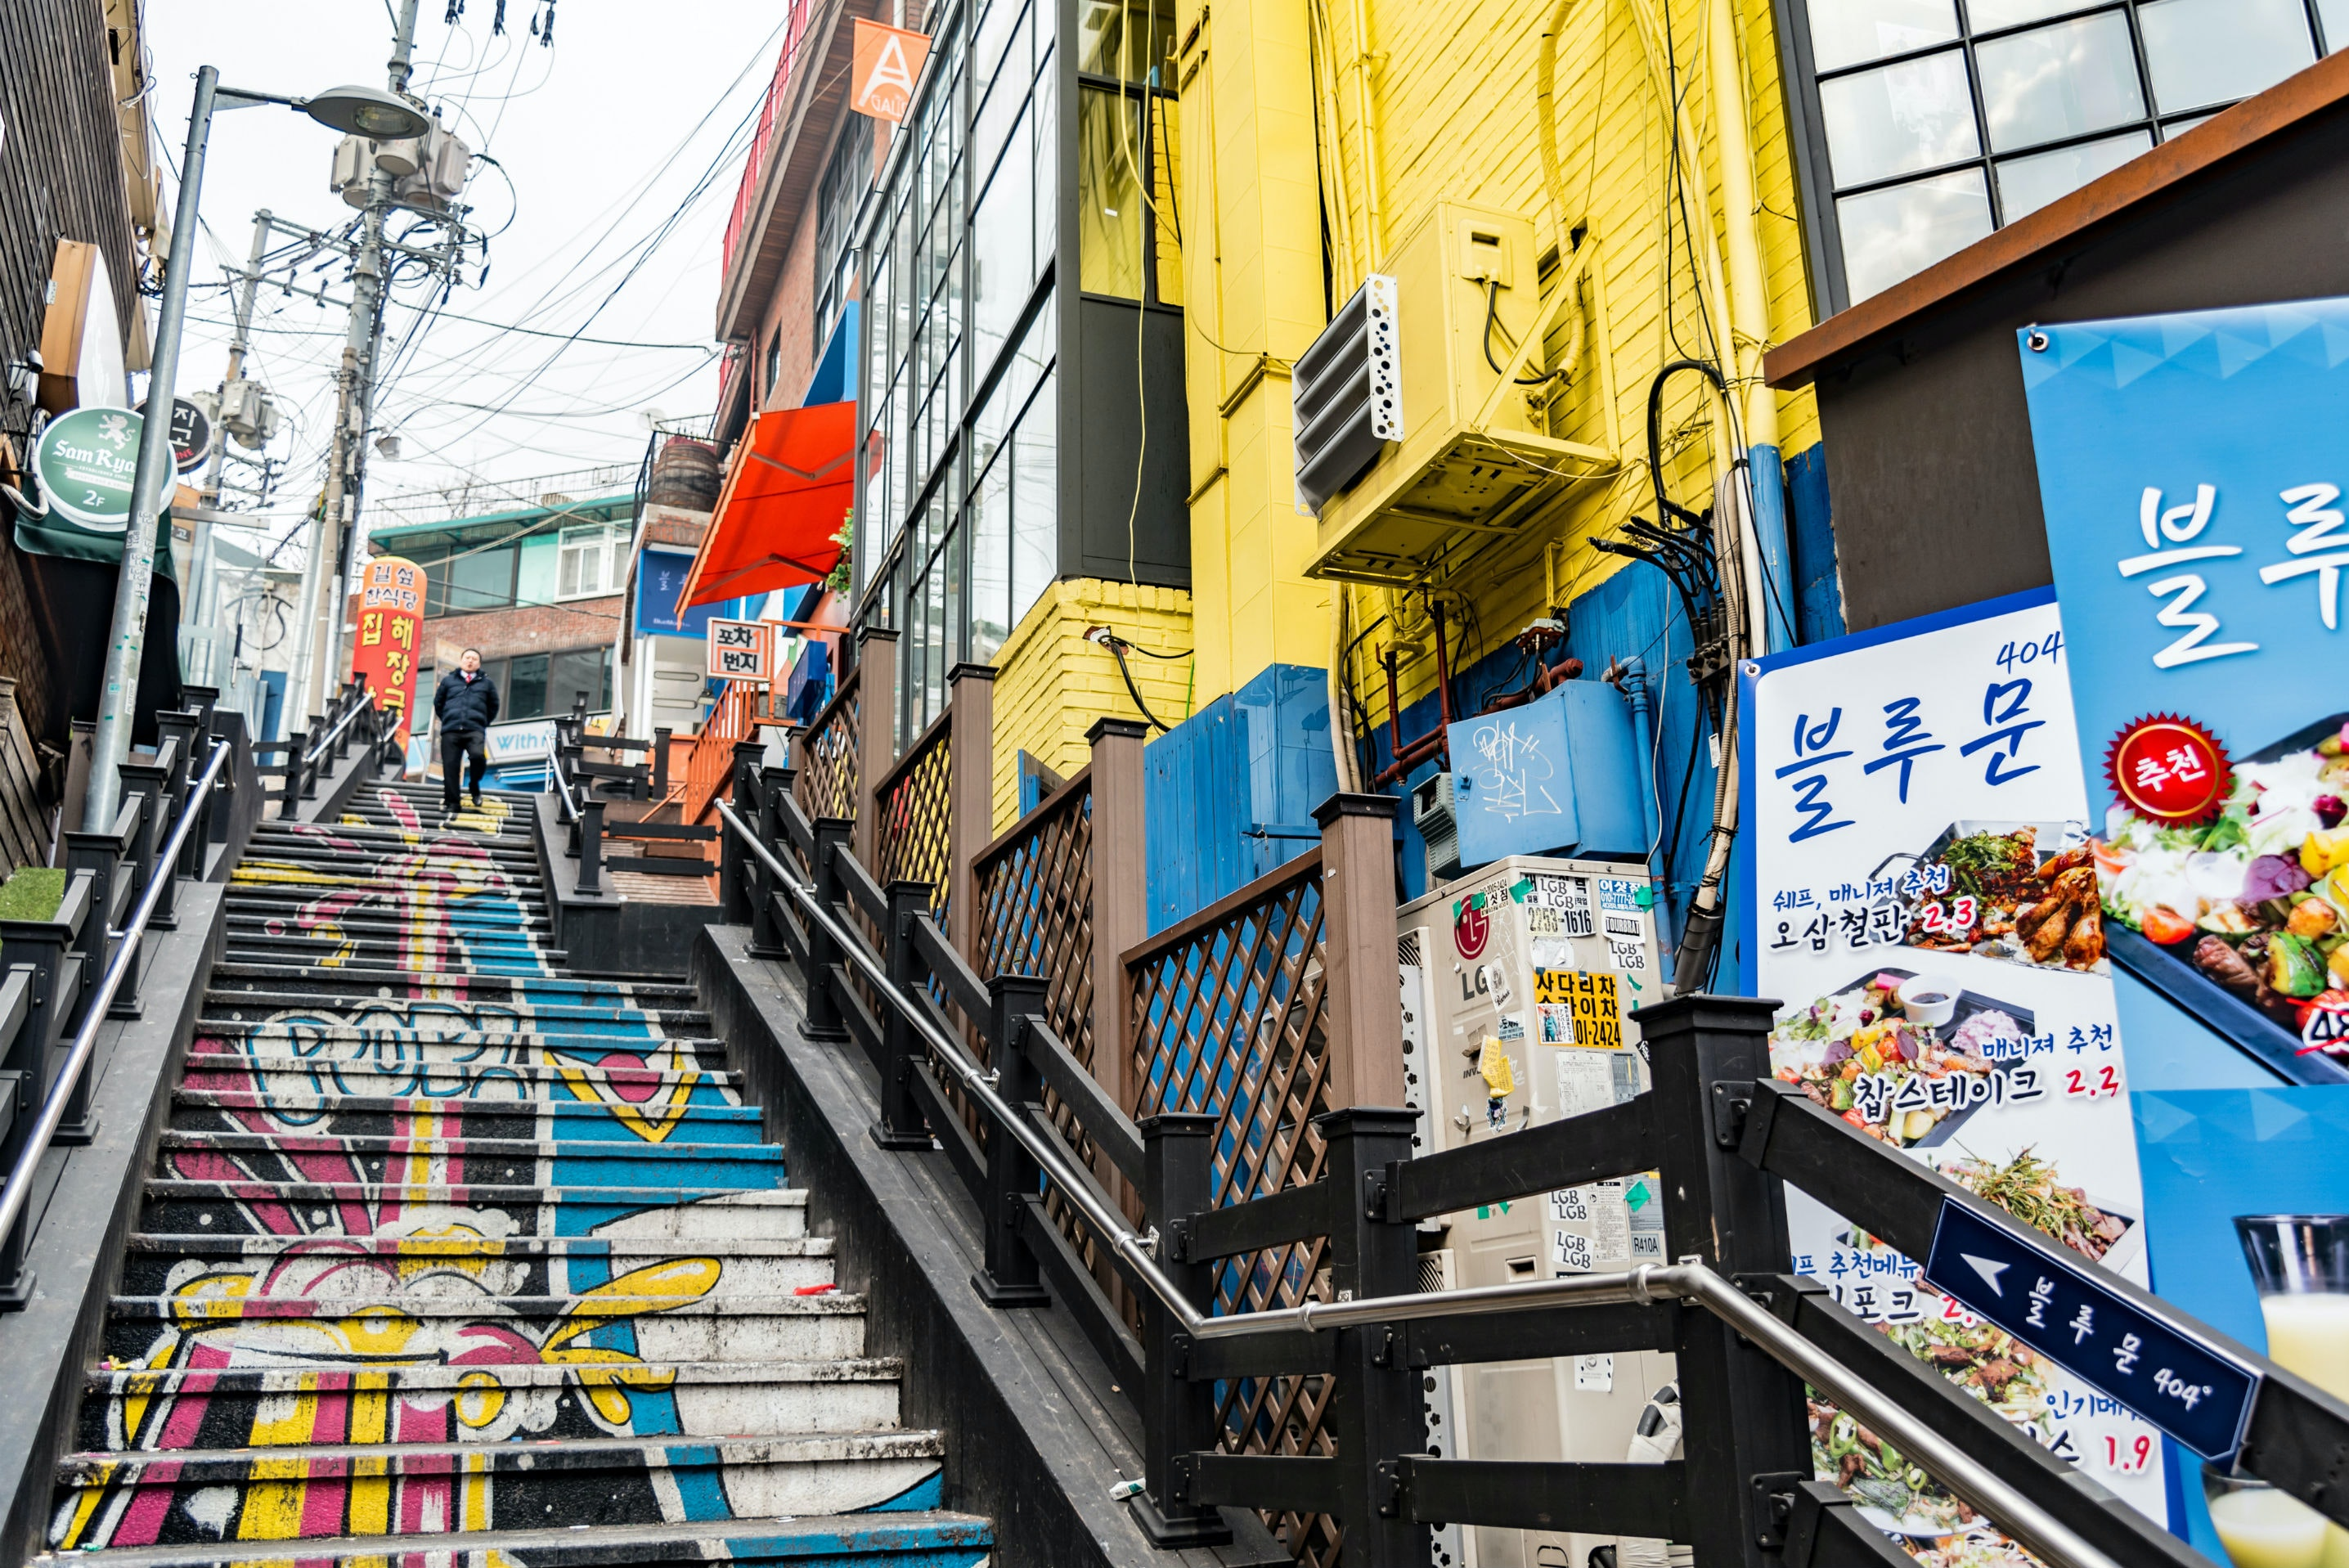 Seoul's Itaewon district is a rewarding place to spend a few hours.